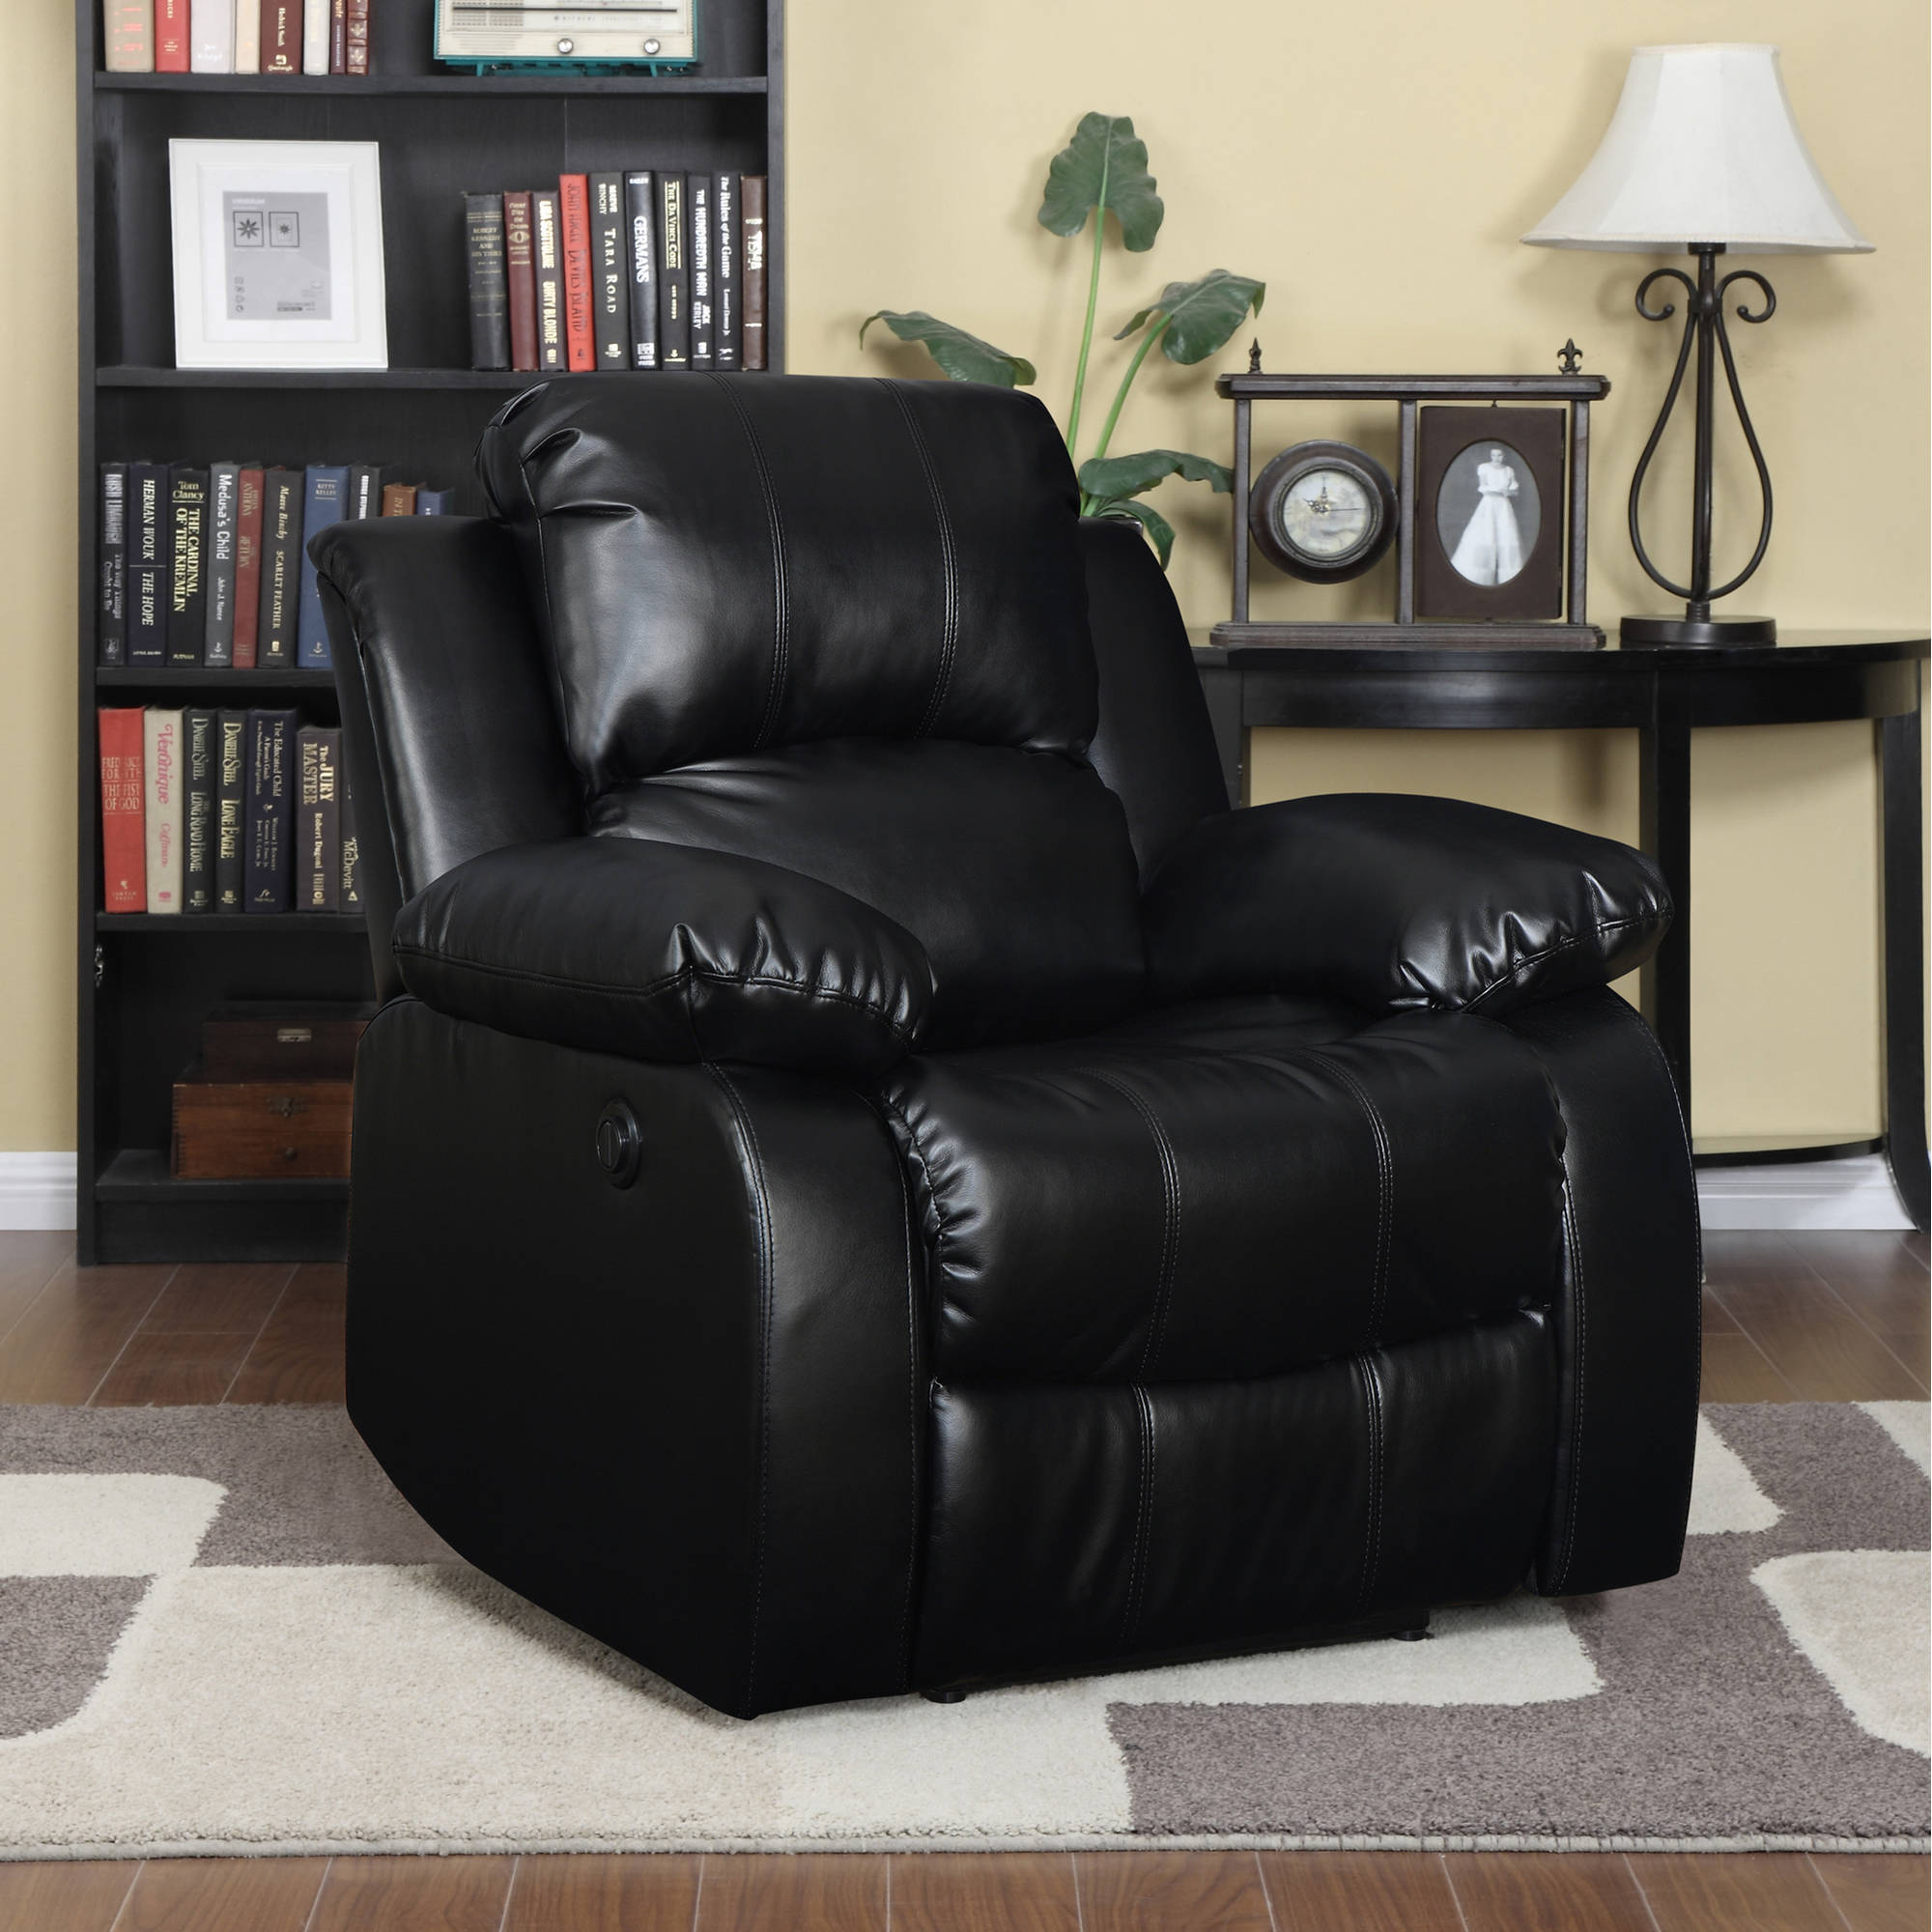 ProLounger Power Wall Hugger Recliner Multiple Colors Walmart